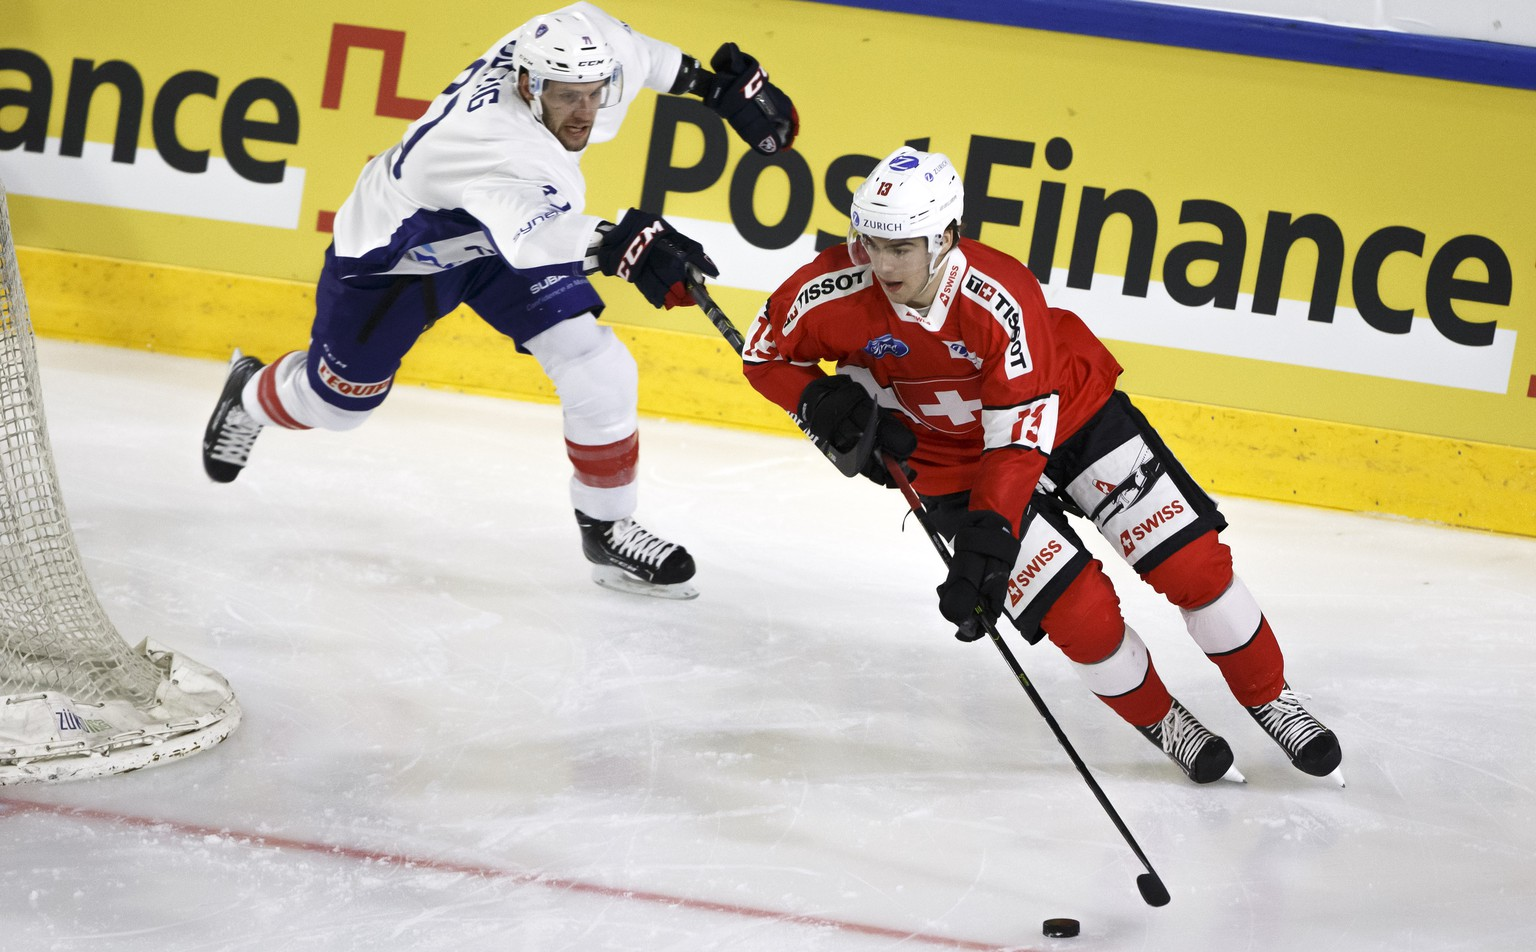 France's forward Anthony Guttig, left, vies for the puck with Switzerland's forward Nico Hischier, right, during a friendly international ice hockey game between Switzerland and France, at the ice stadium De Graben, in Sierre, Switzerland, Friday, April 26, 2019. Switzerland national ice hockey team will play several friendly games of preparation ahead the IIHF 2019 World Championship. (KEYSTONE/Salvatore Di Nolfi)